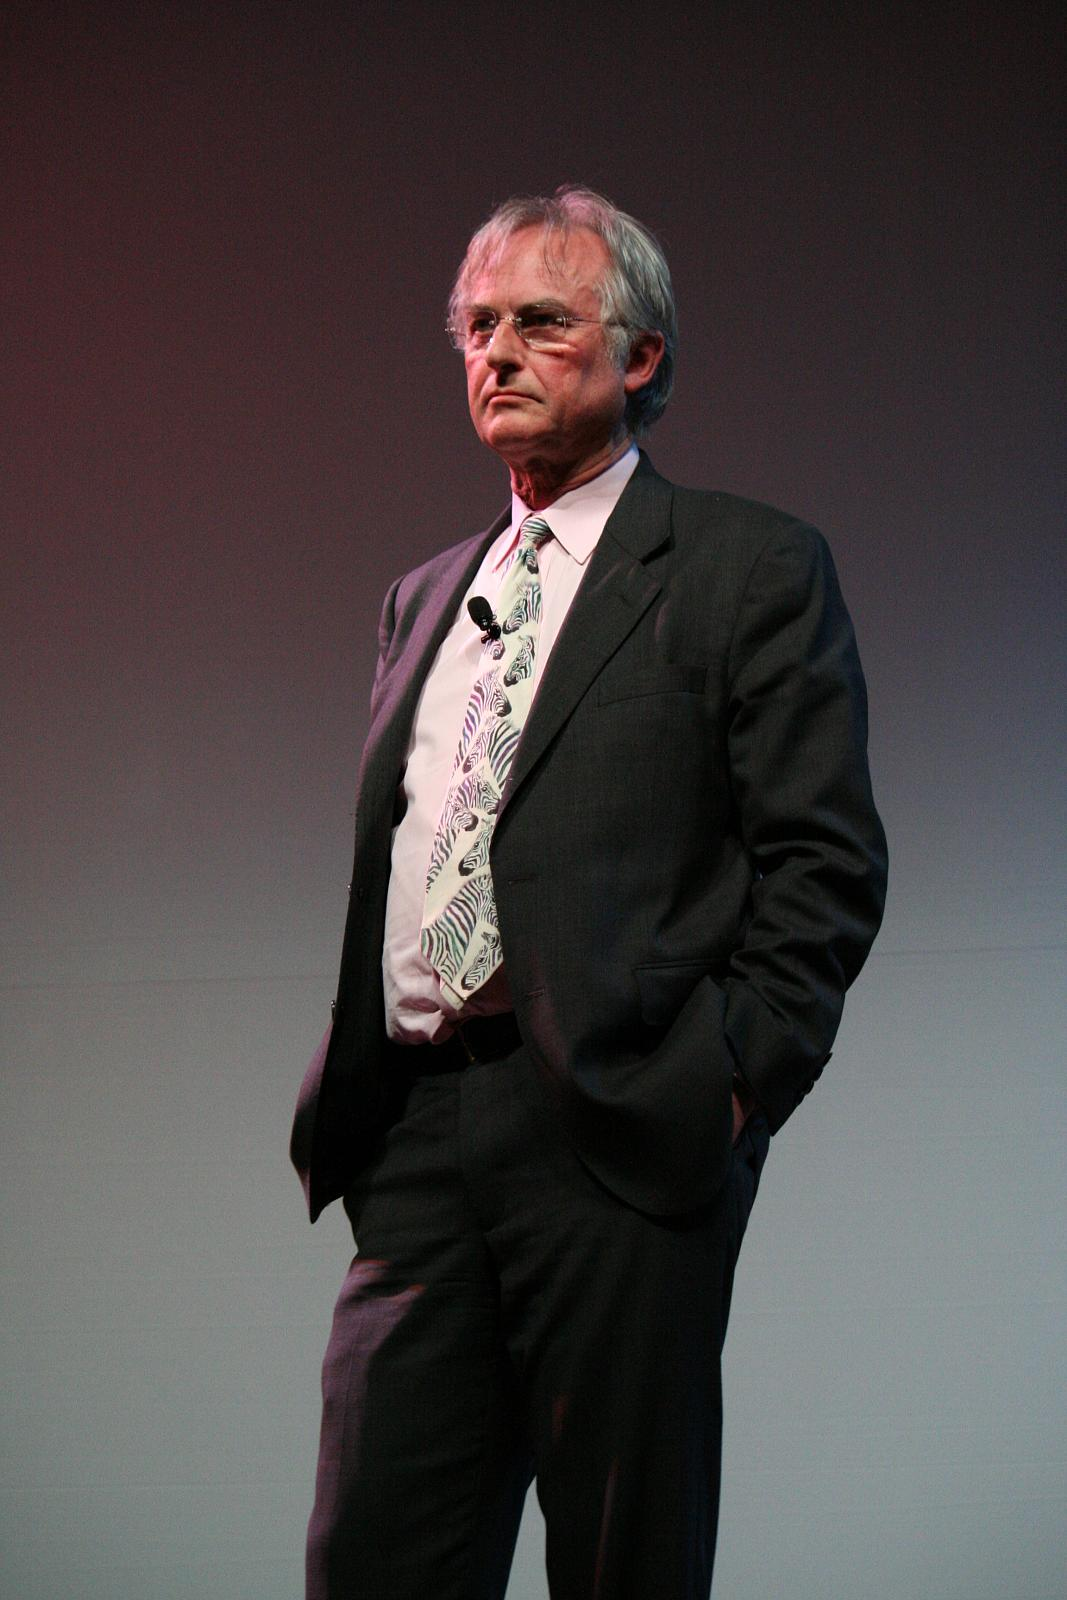 https://i1.wp.com/upload.wikimedia.org/wikipedia/commons/7/77/Dawkins_at_UT_Austin.jpg